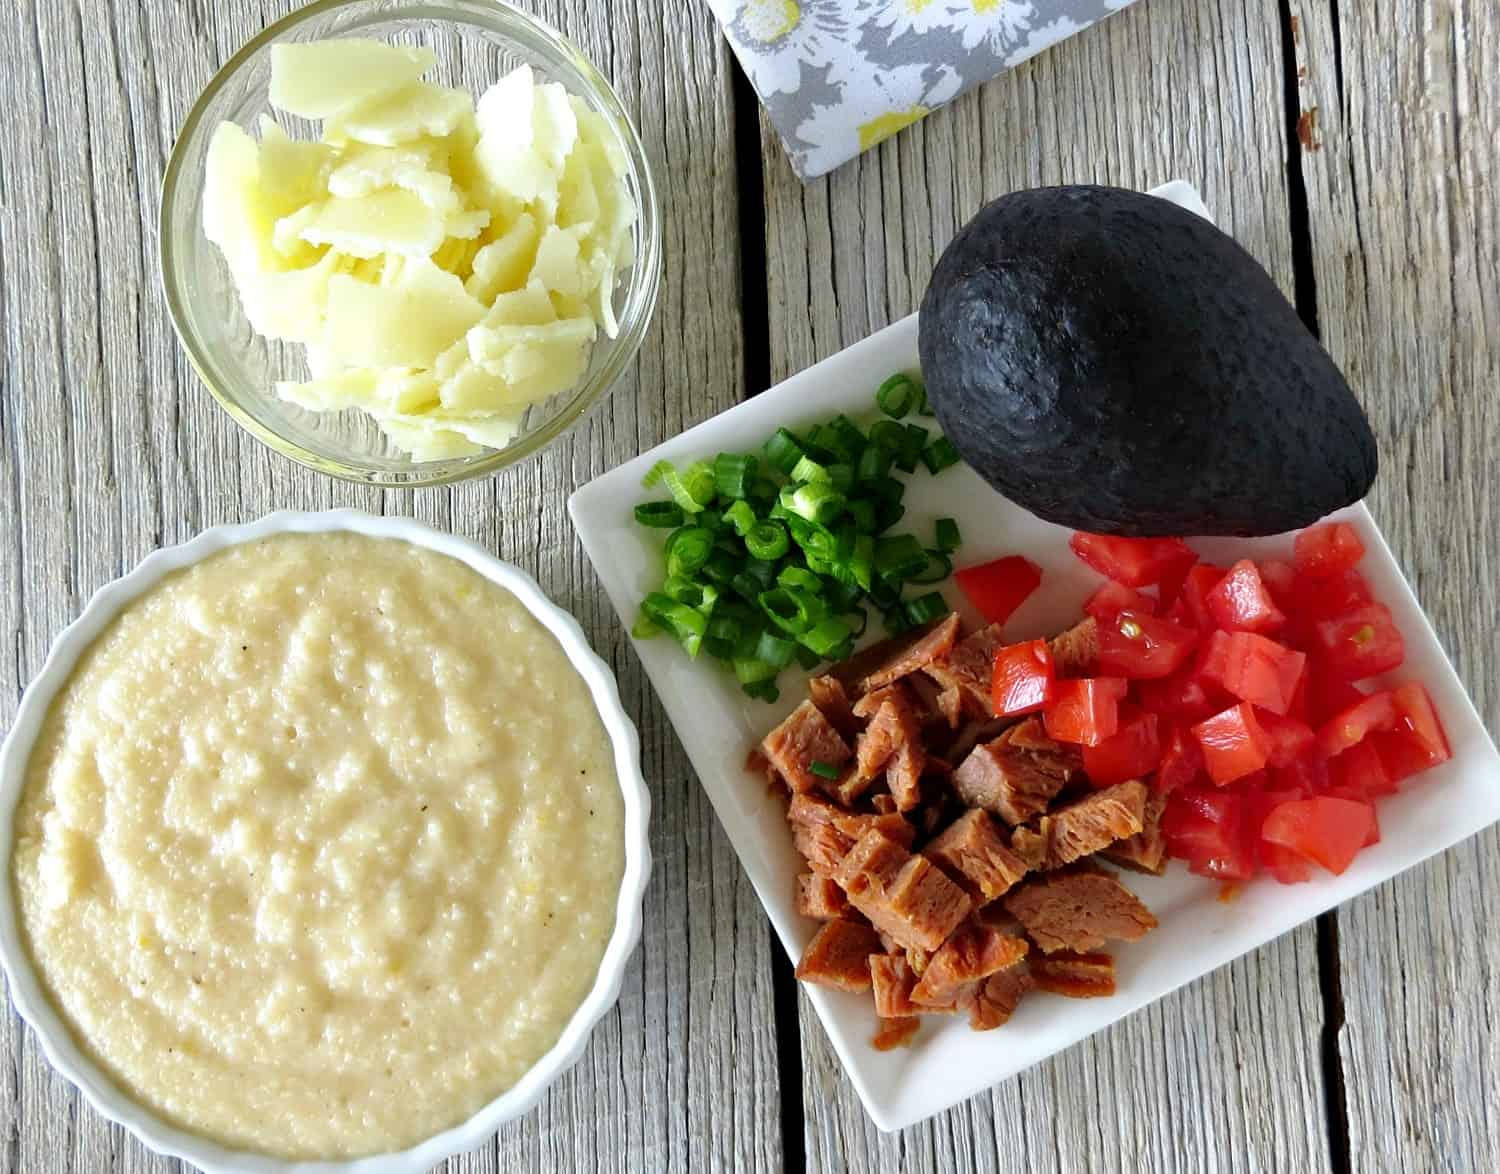 Cheesy Grits Ingredients